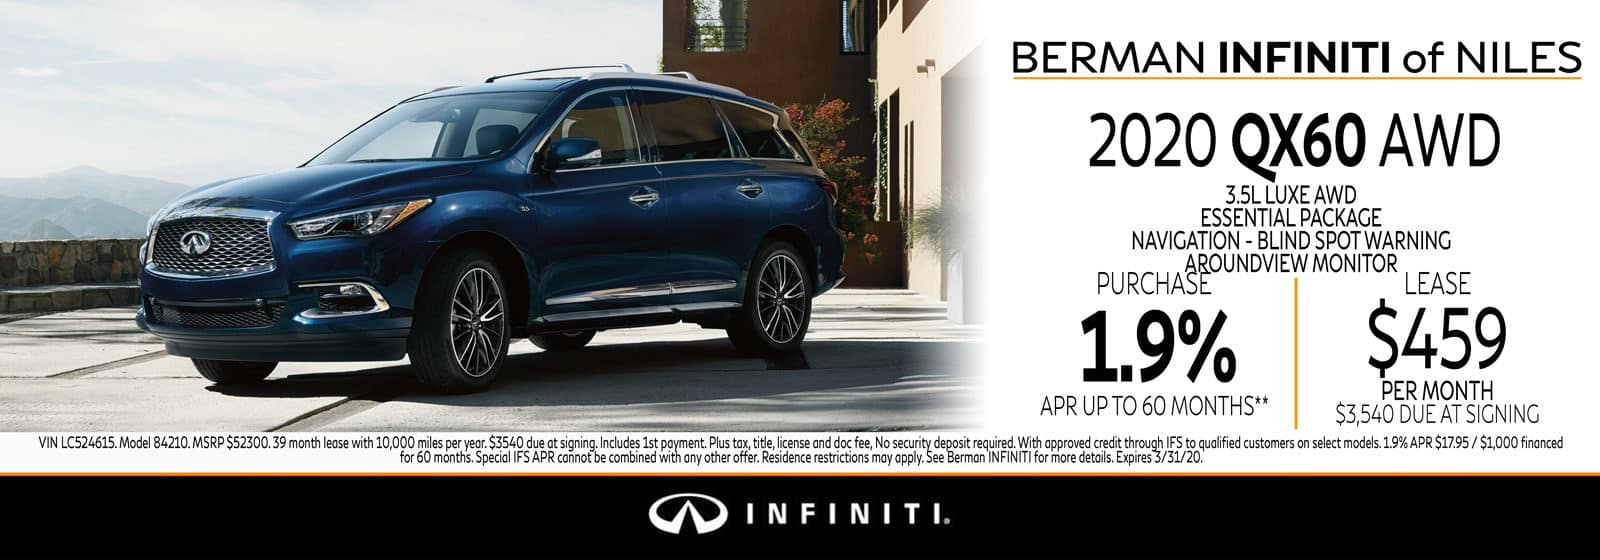 New 2020 INFINITI QX60 March Offer at Berman INFINITI of Niles!